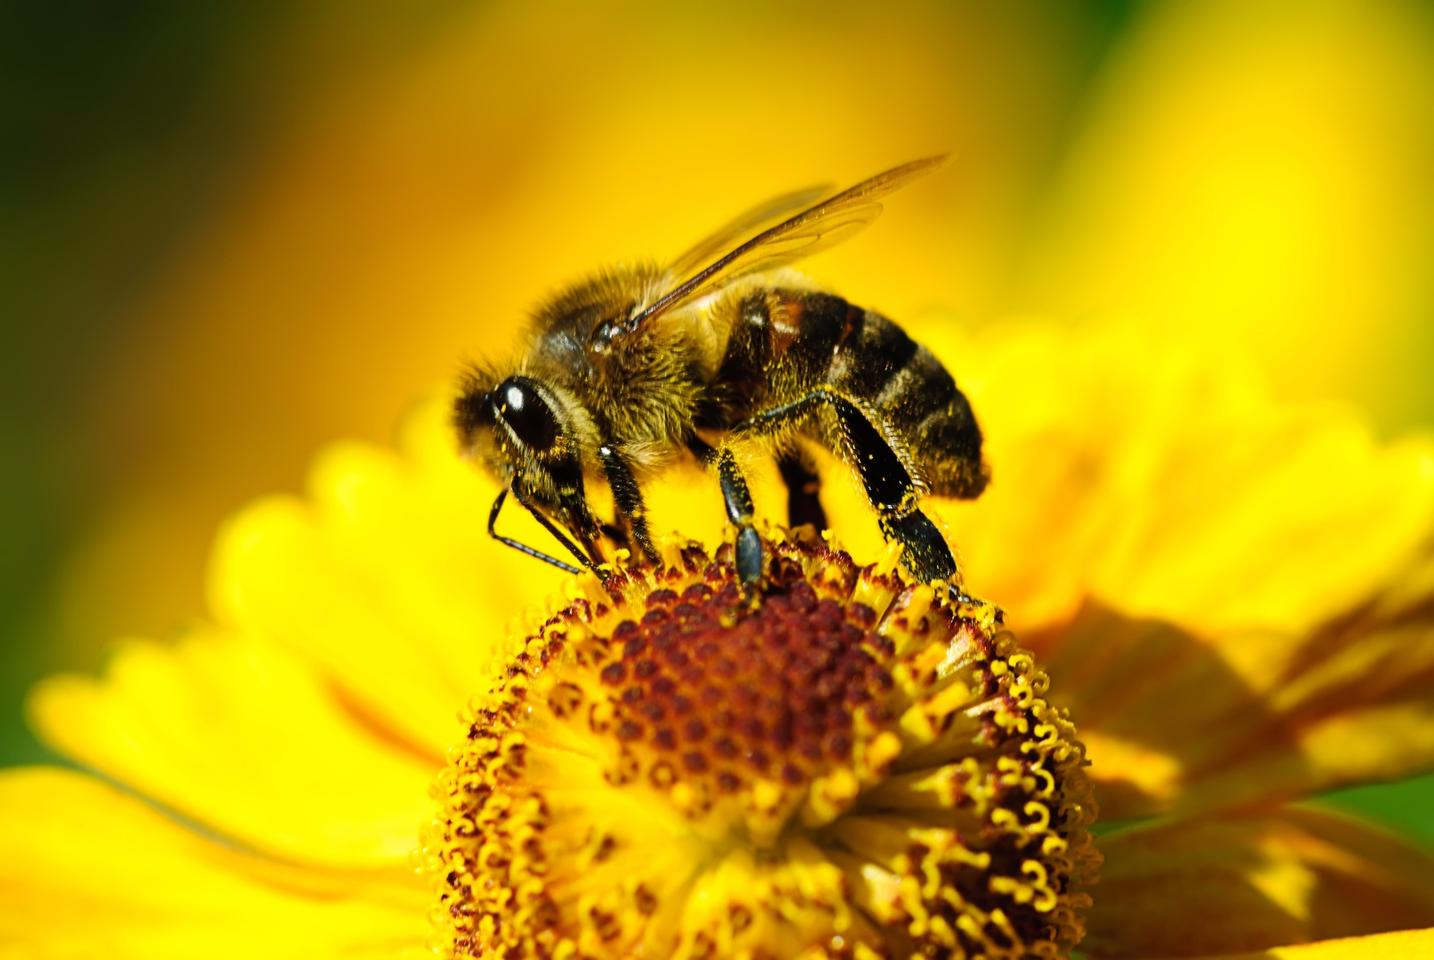 The development of pesticides that eliminate other pests but leave bees unharmed could help arrest the decline of beepopulations